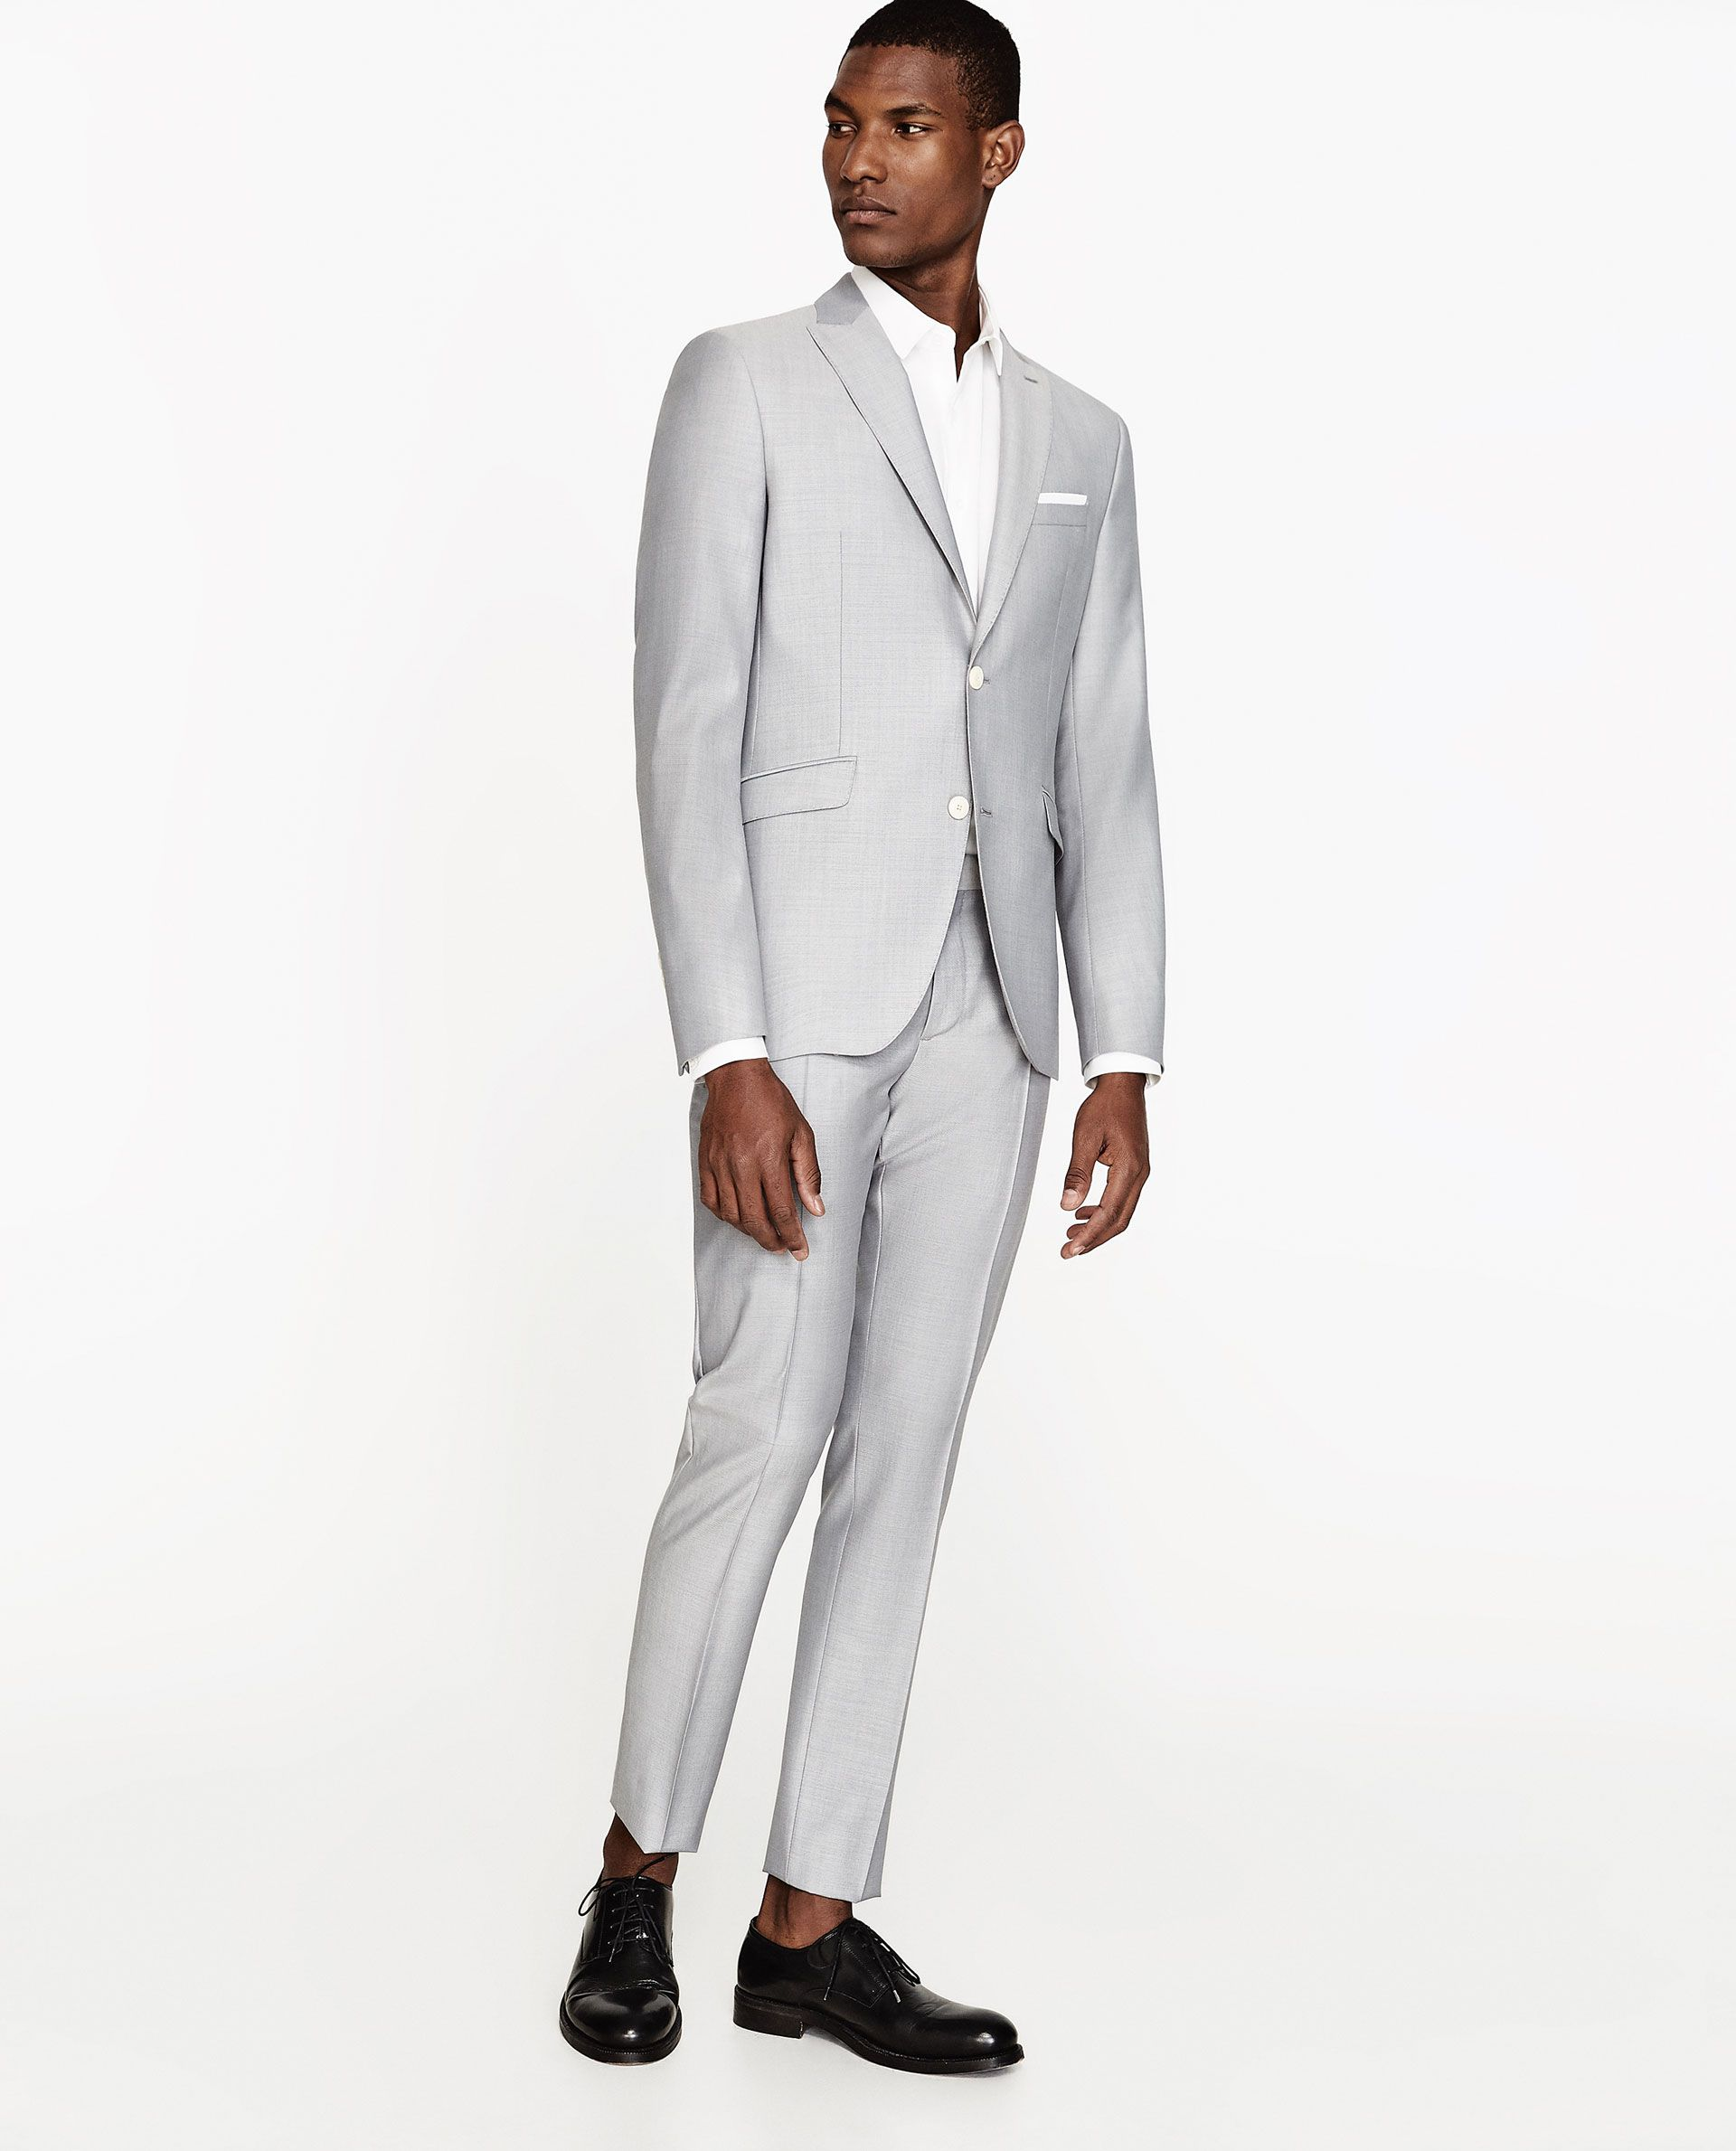 Image 1 of pearl grey mohair suit from zara wedding decorations wedding image 1 of pearl grey mohair suit from zara junglespirit Images